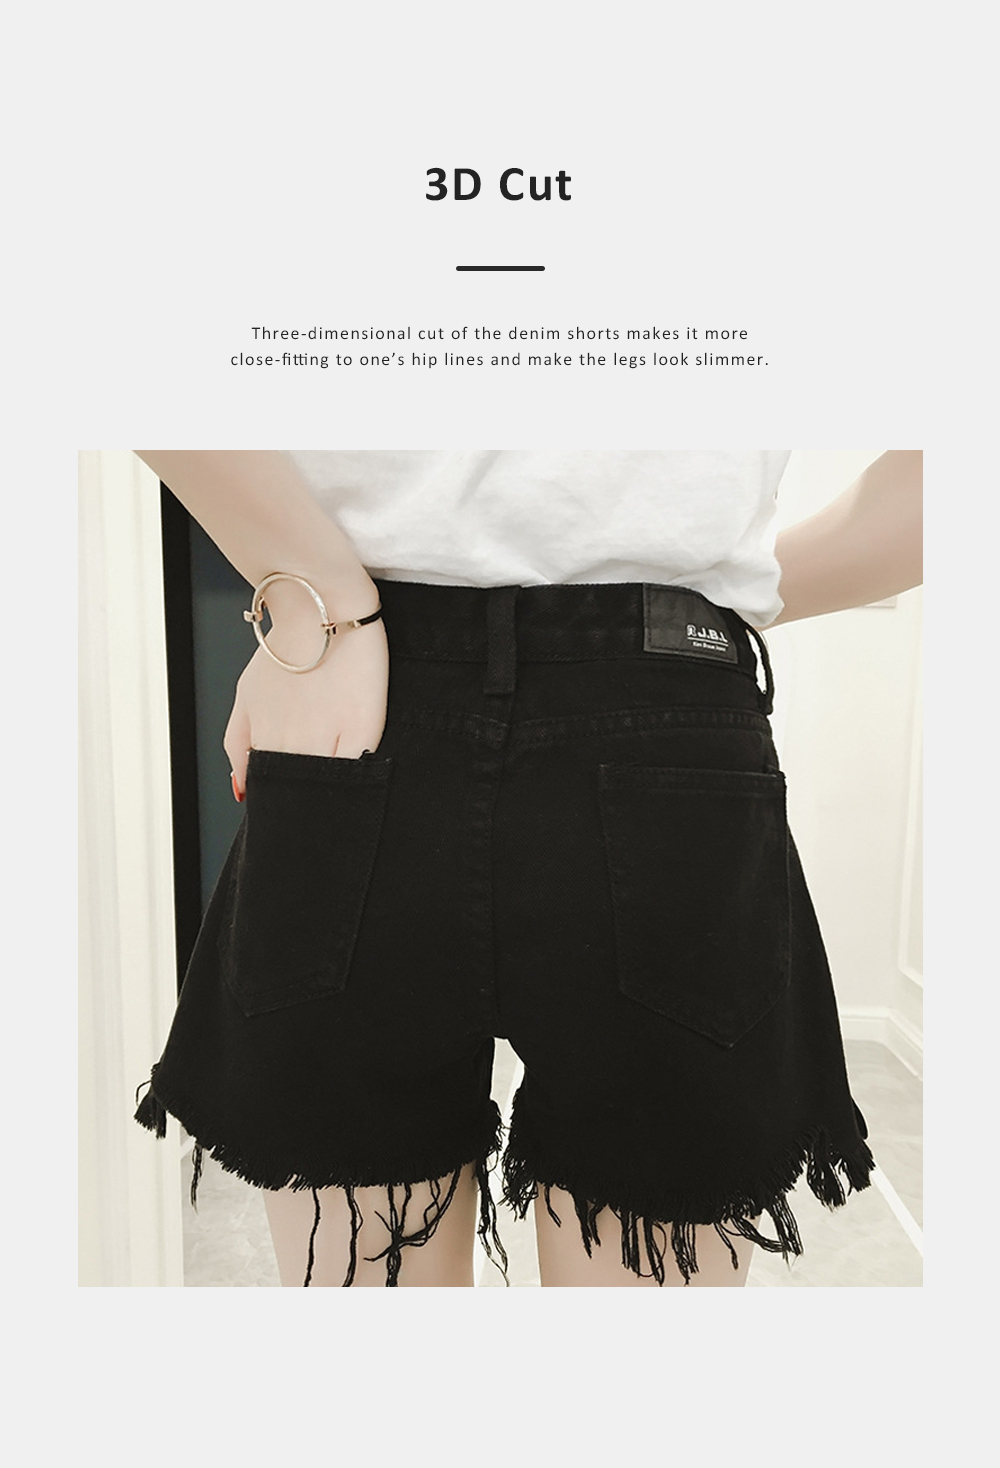 2019 High-waisted Denim Shorts Jeans Pants for Girl Students Wear Summer Loose Version Short Pants in Pure Black Color or White Color 4